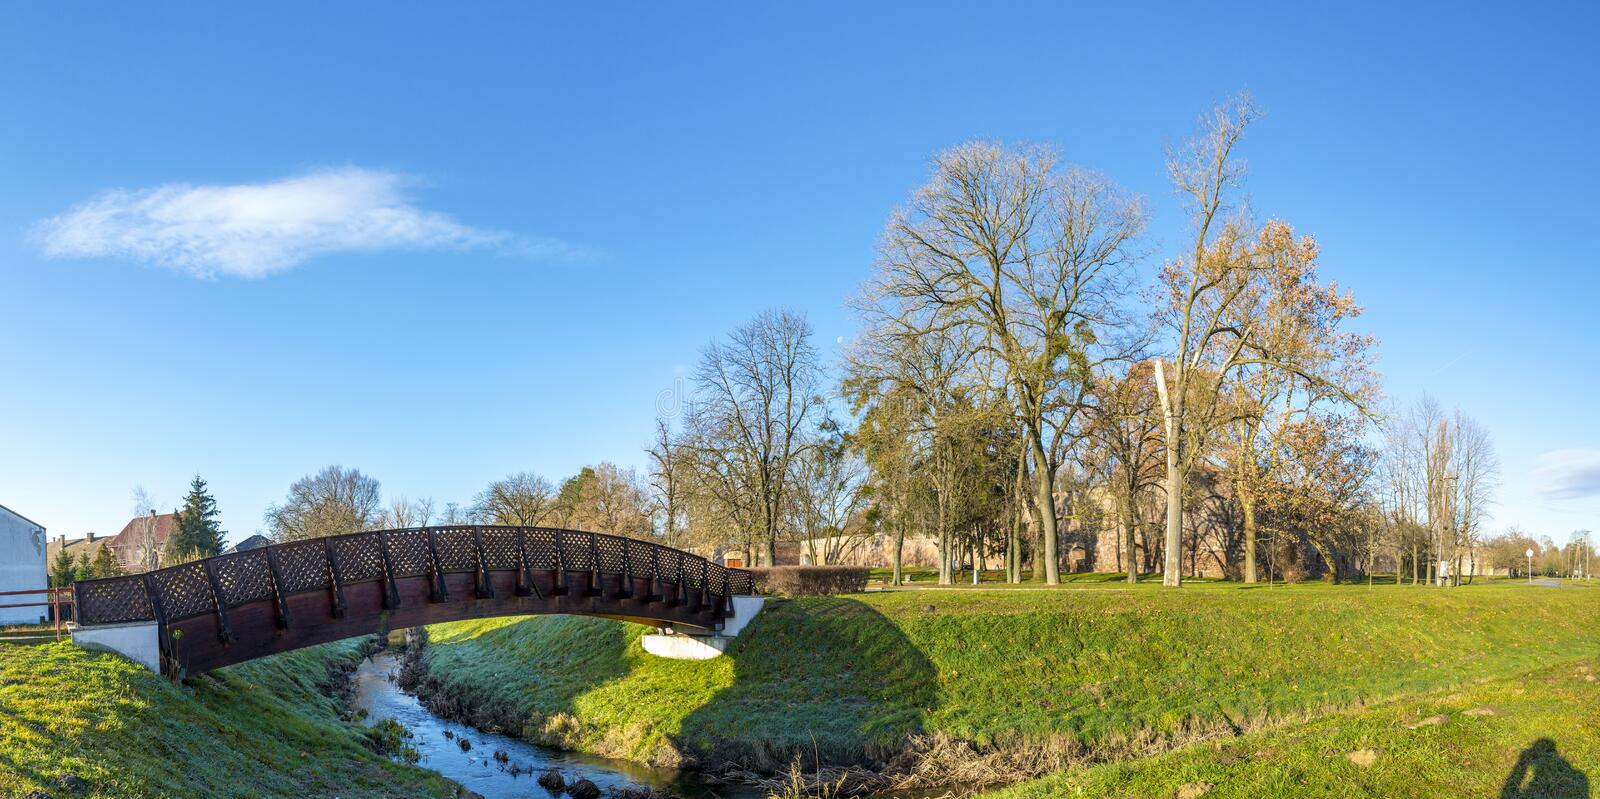 A small wooden pedestrian bridge leading to historical medieval Zrinyi Castle in a nice sunny winter day, Szigetvar, Hungary royalty free stock photo